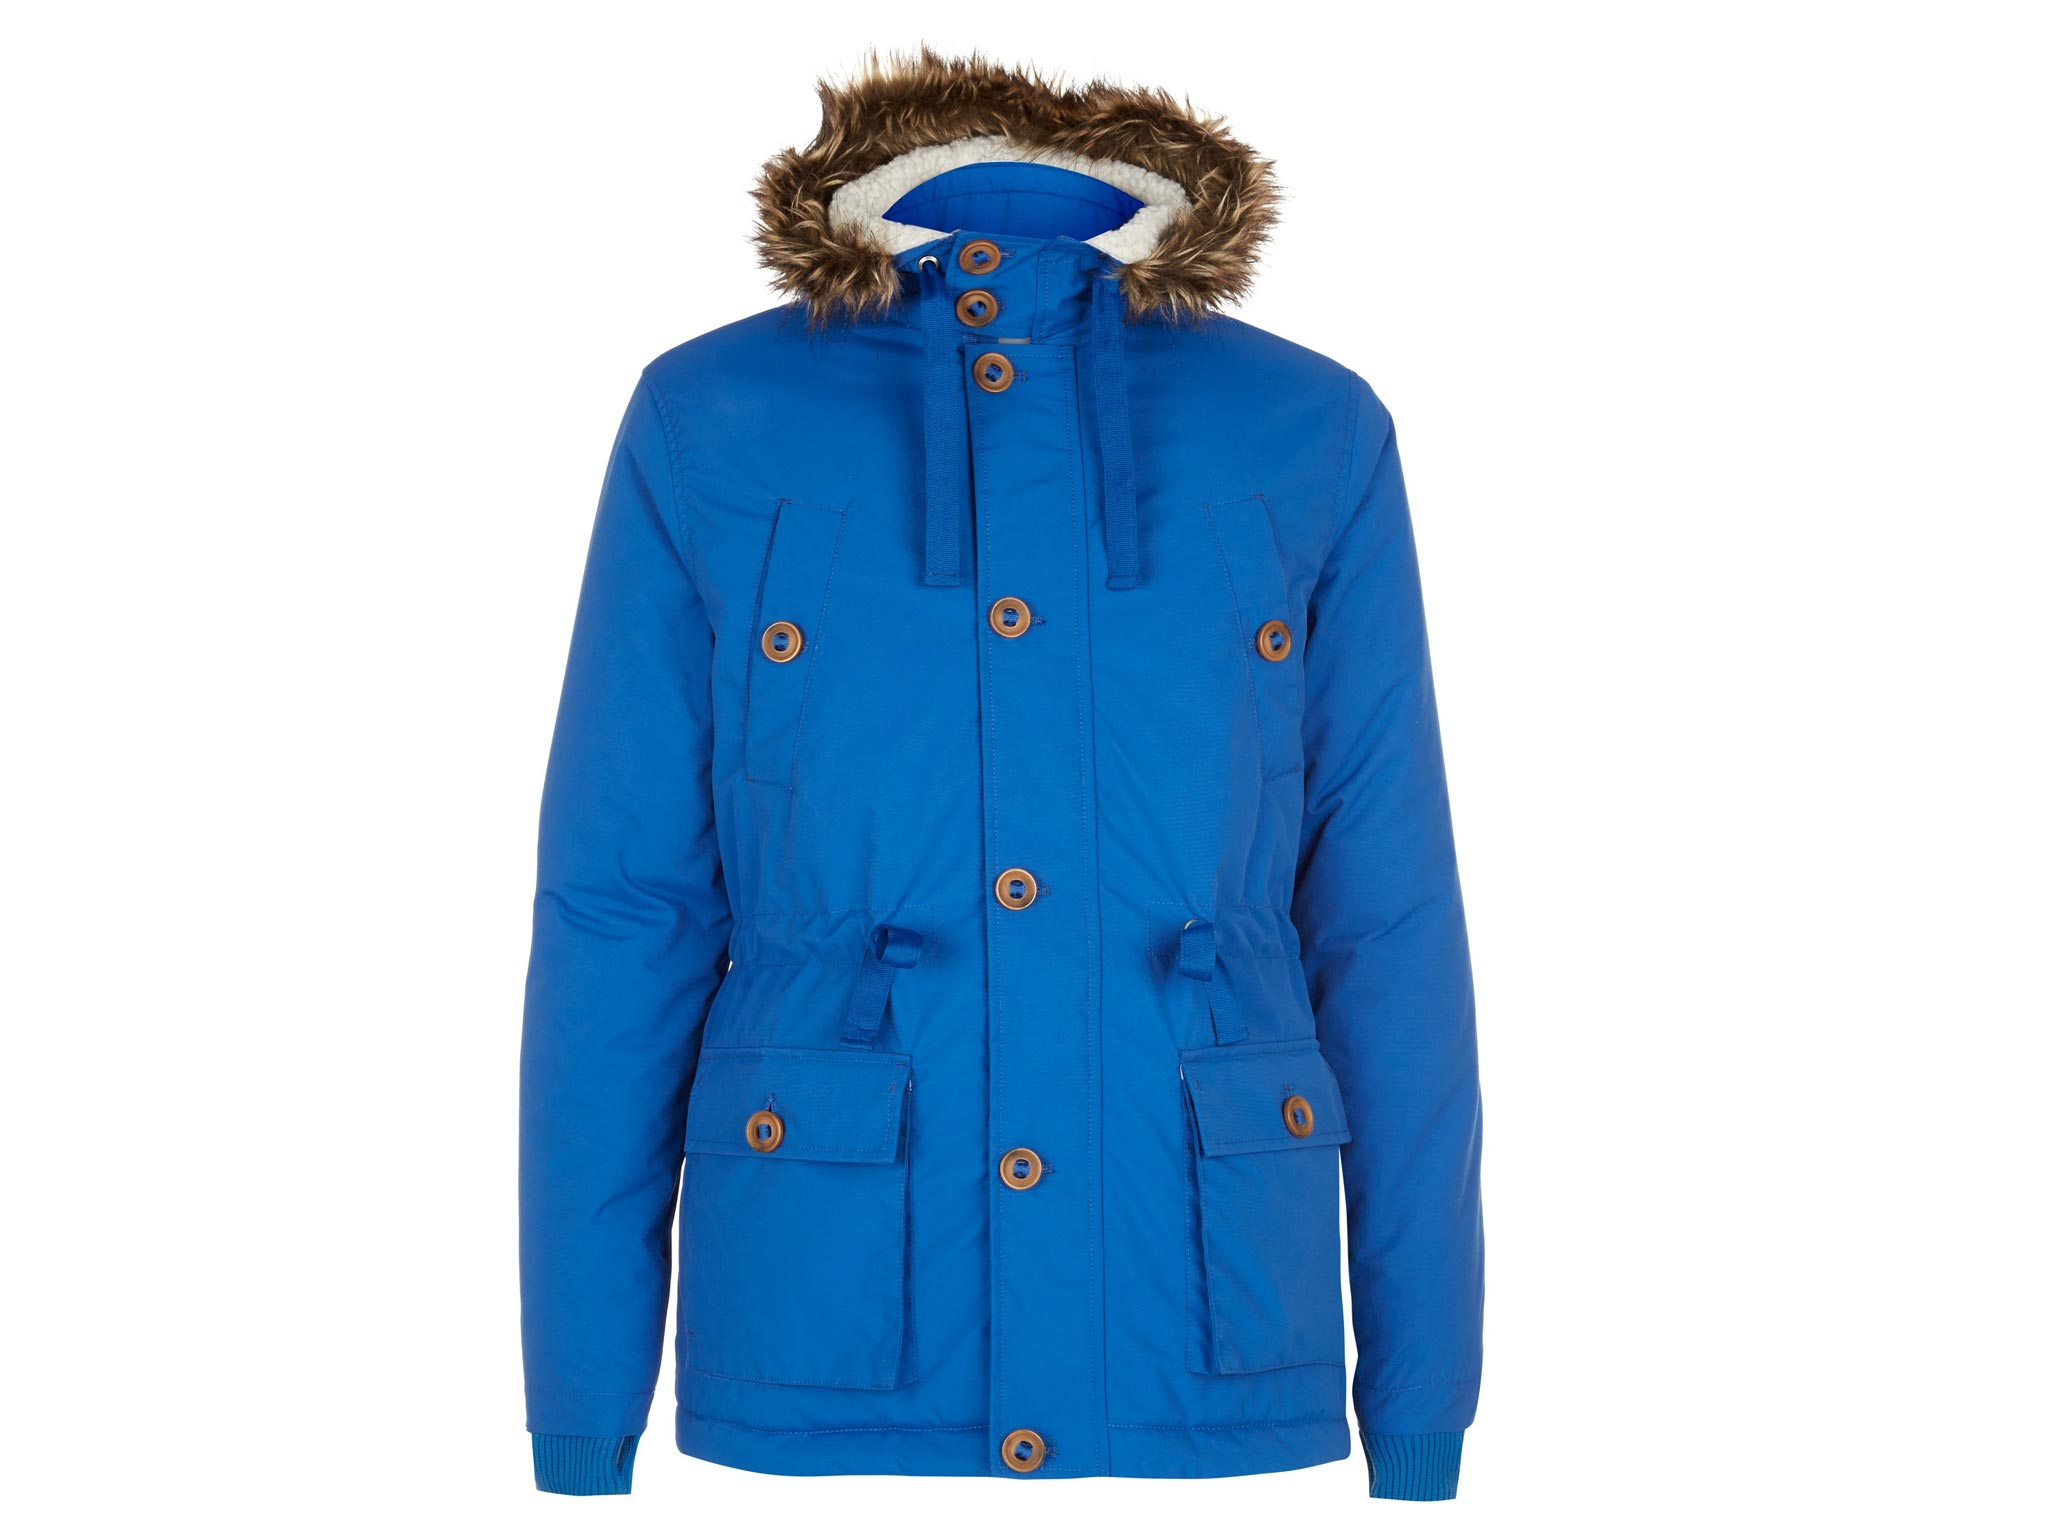 b0cd1aa27 The 50 Best coats and jackets | The Independent